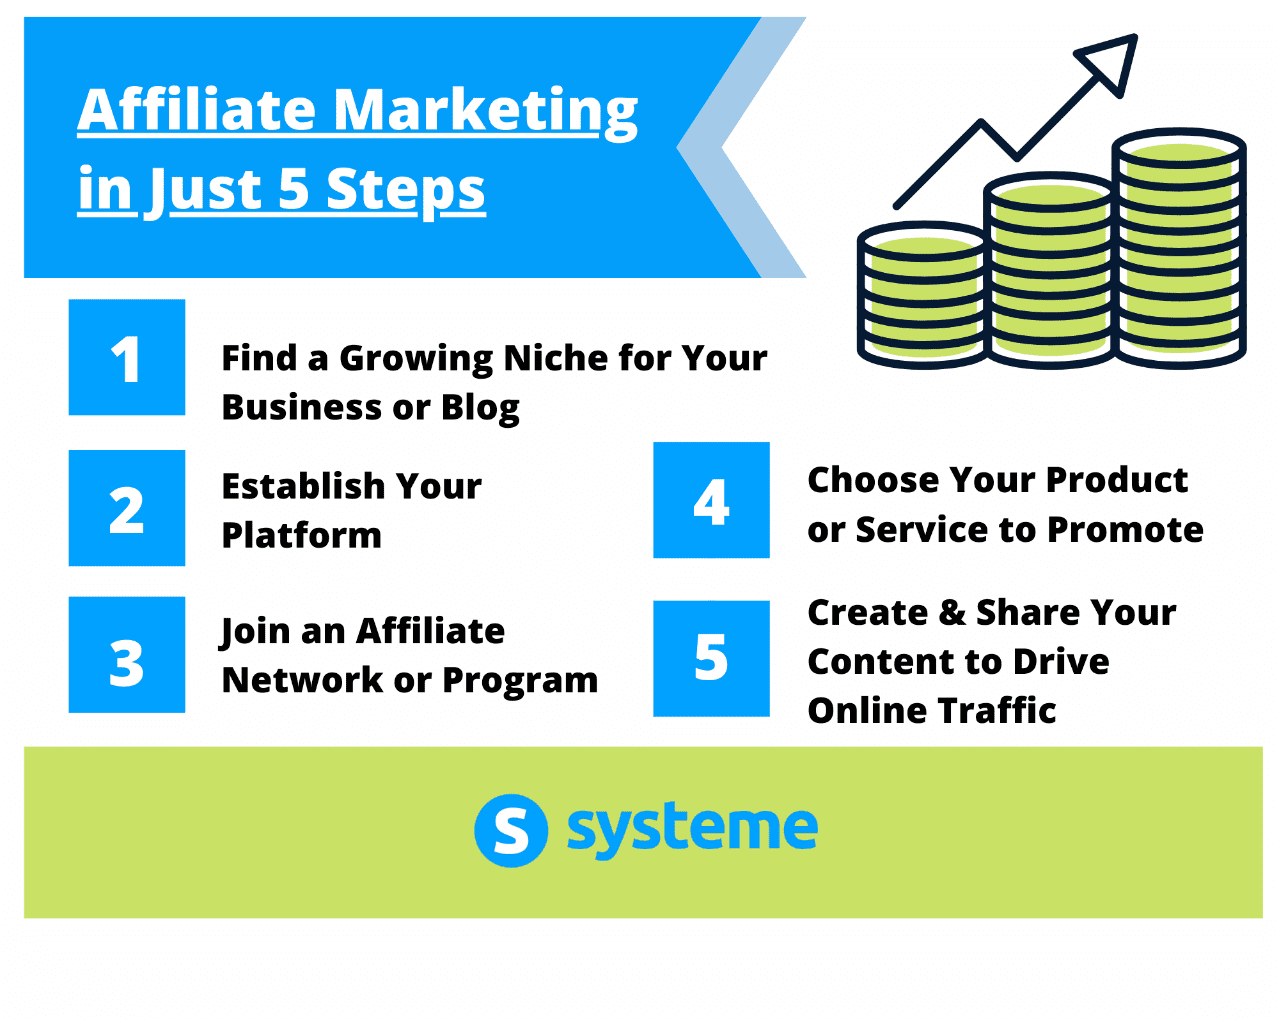 5 Steps for Successful Affiliate Marketing